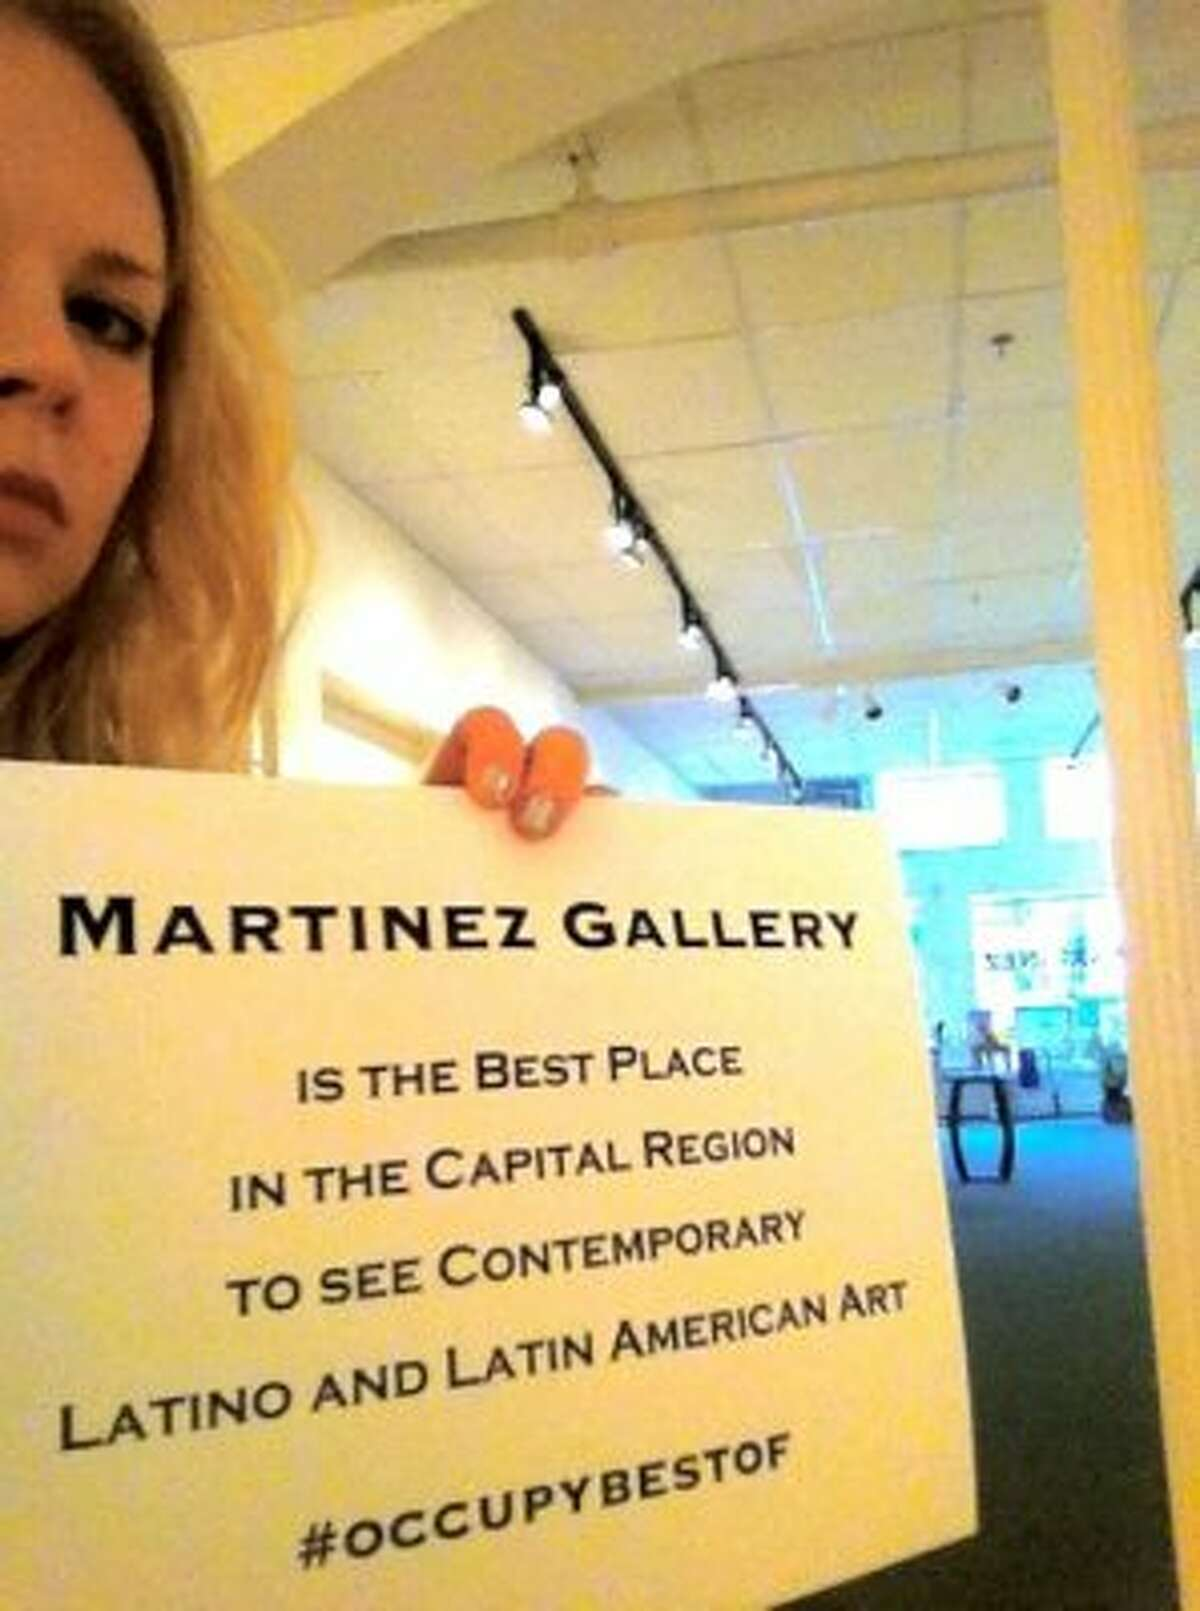 Grace Tatara submitted this photo from the Martinez Gallery in Troy, her choice as the best place in the Capital Region to see contemporary Latino and Latin American art.